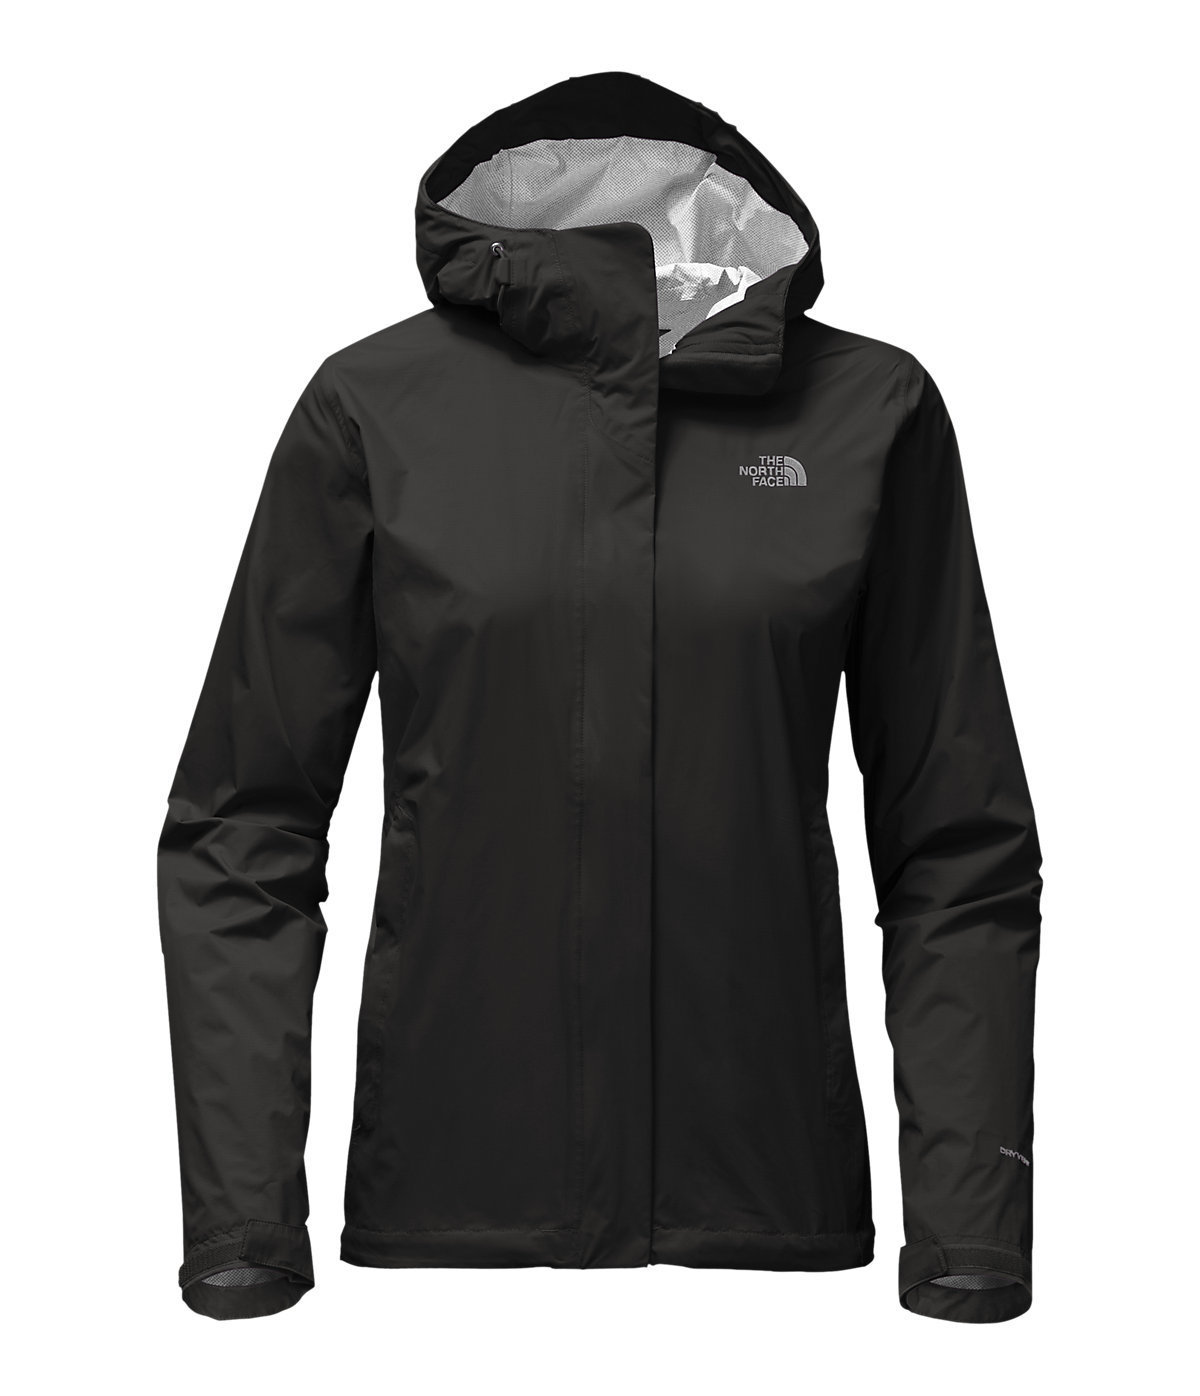 f0f7787a3 The North Face Womens Venture 2 Waterproof Jacket - TNF Black